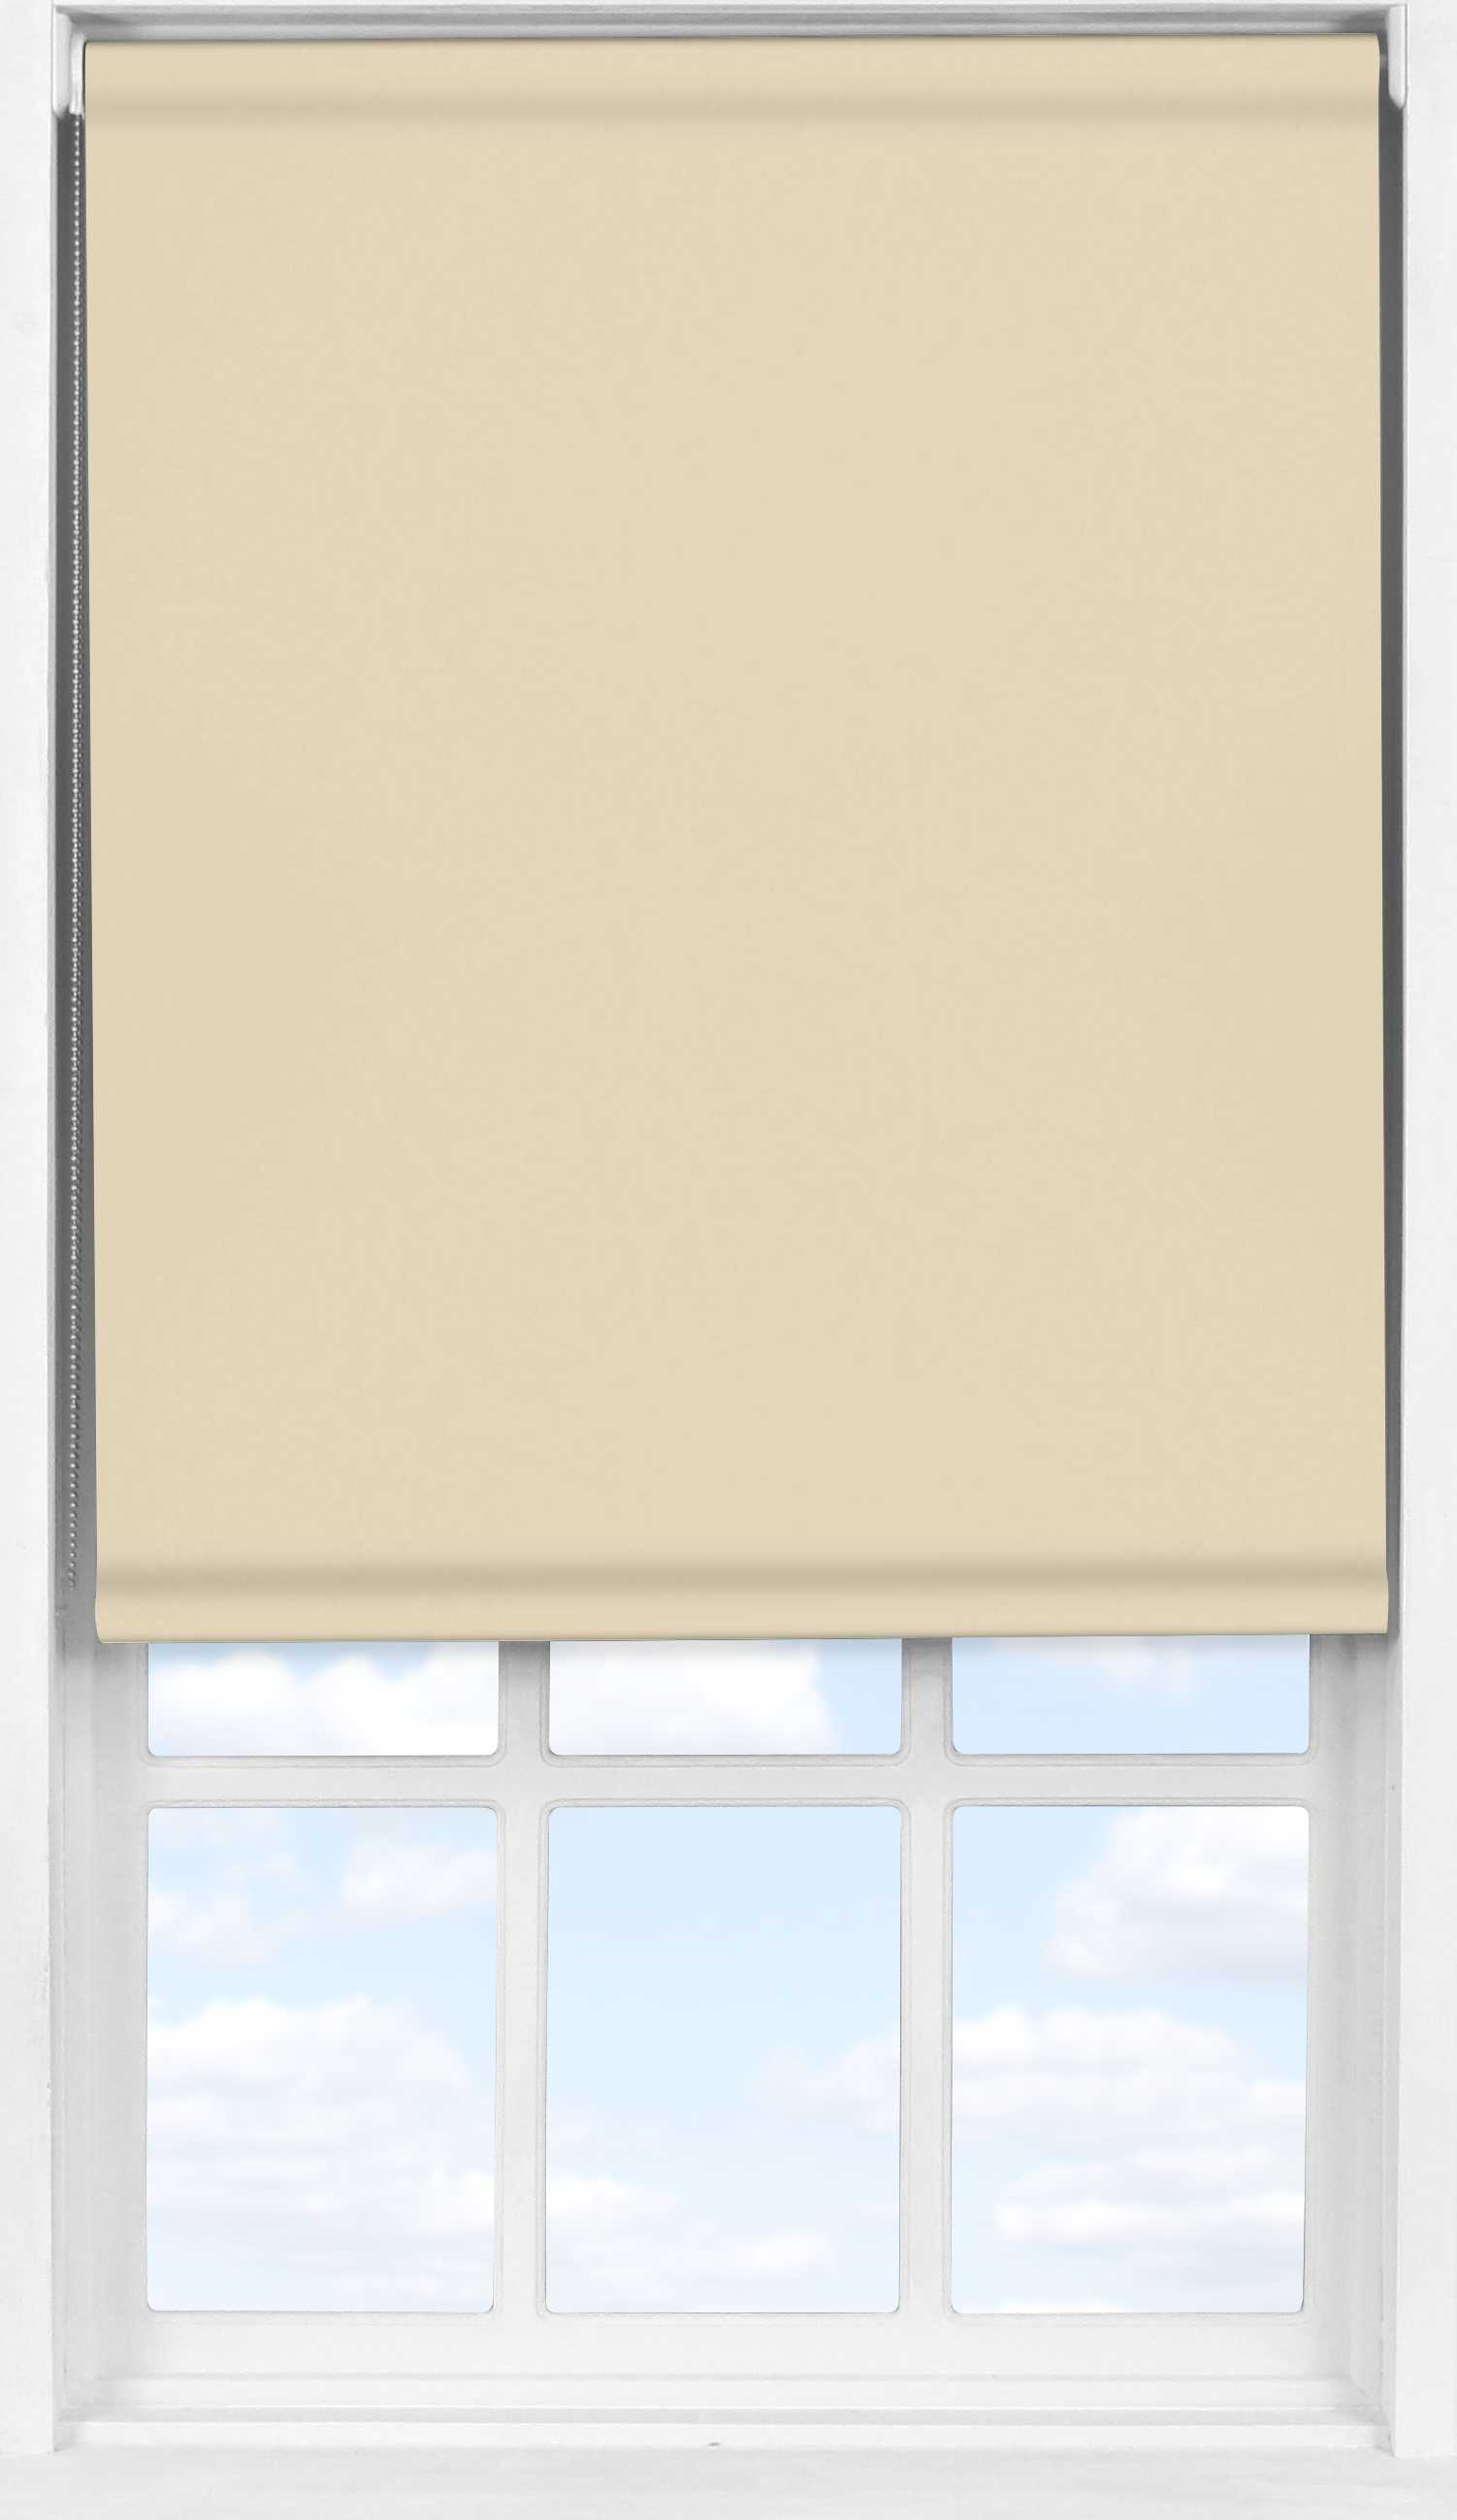 Easifit Roller Blind in Coffee Translucent